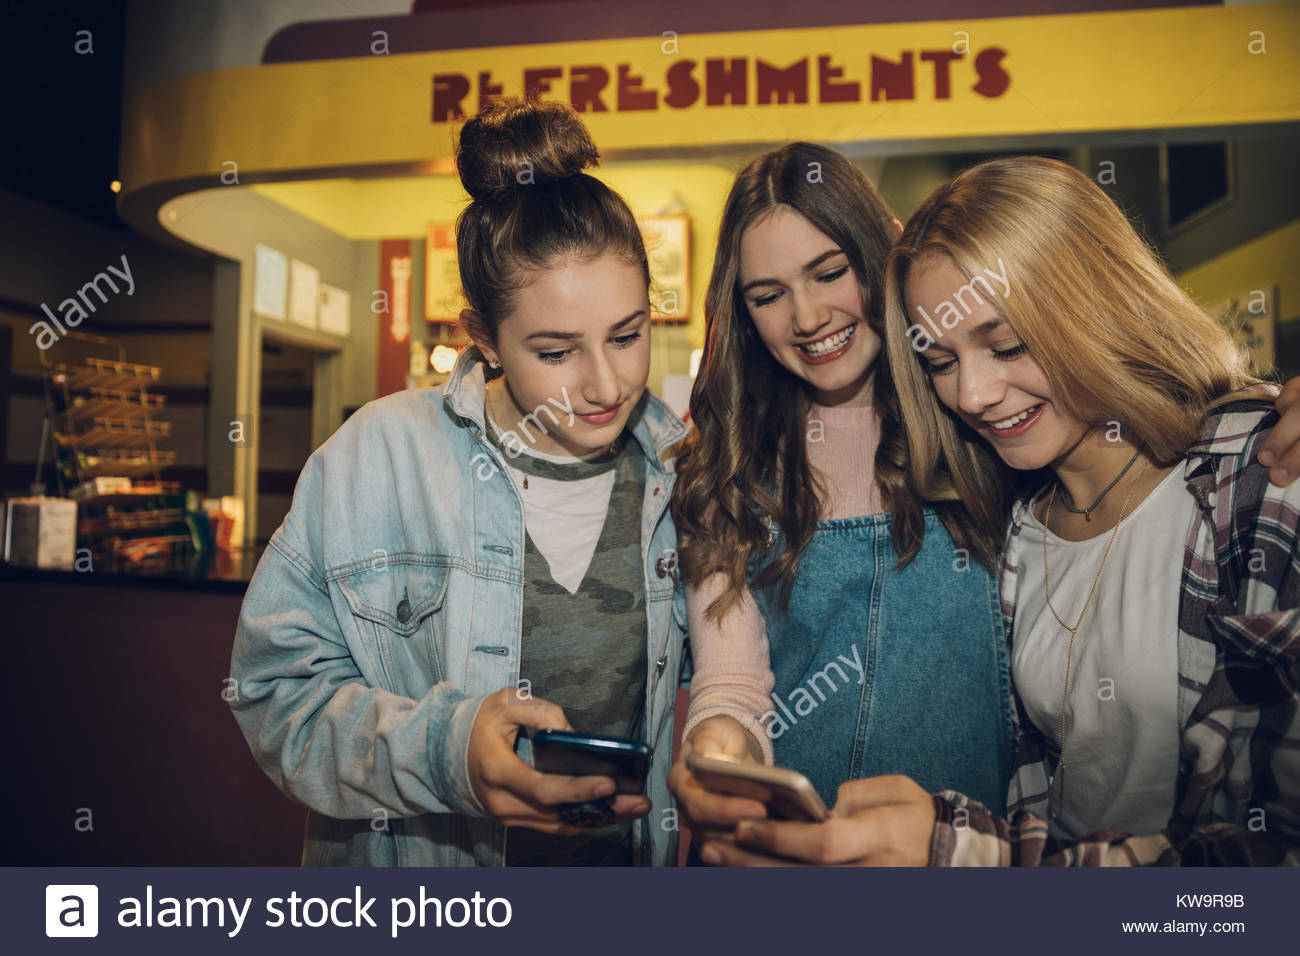 Smiling Caucasian tween girl friends texting with smart phones at movie theater - Stock Image